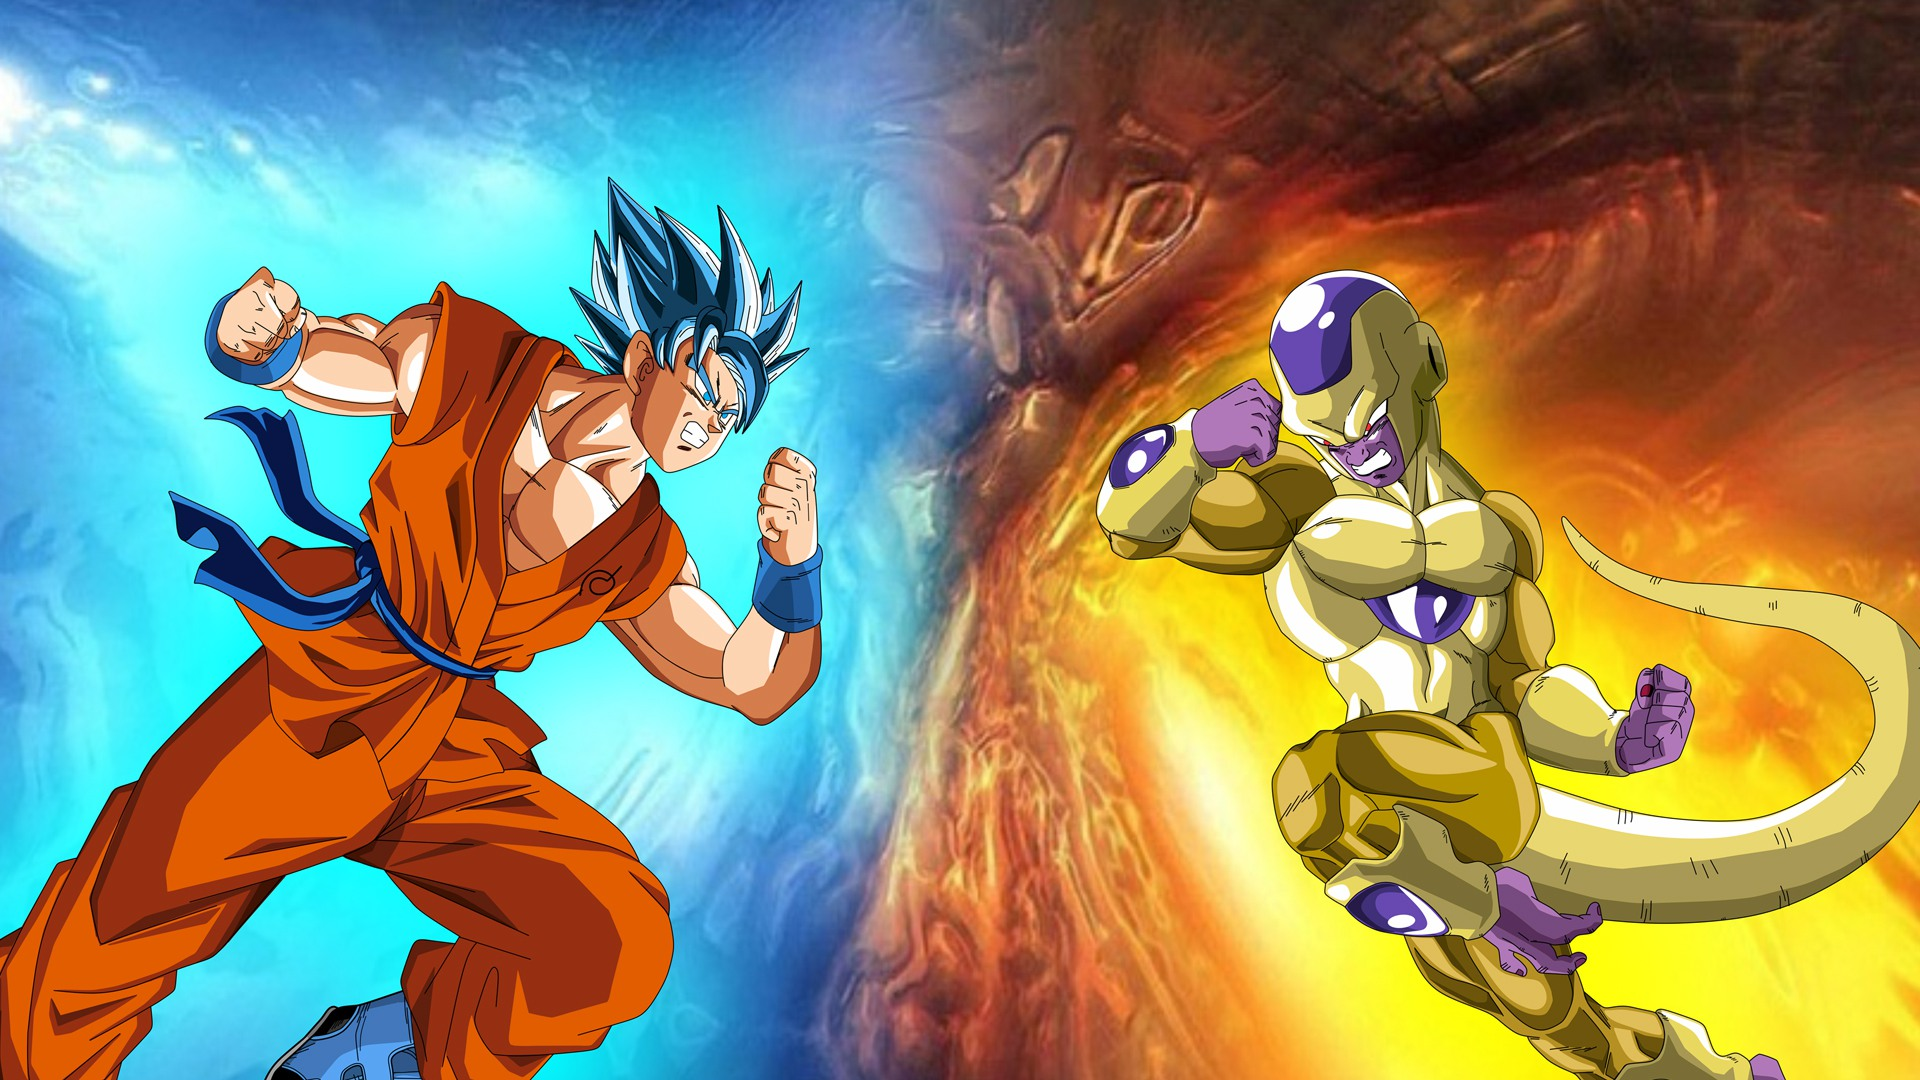 Goku Vs Golden Frieza Full HD Wallpaper And Background Image